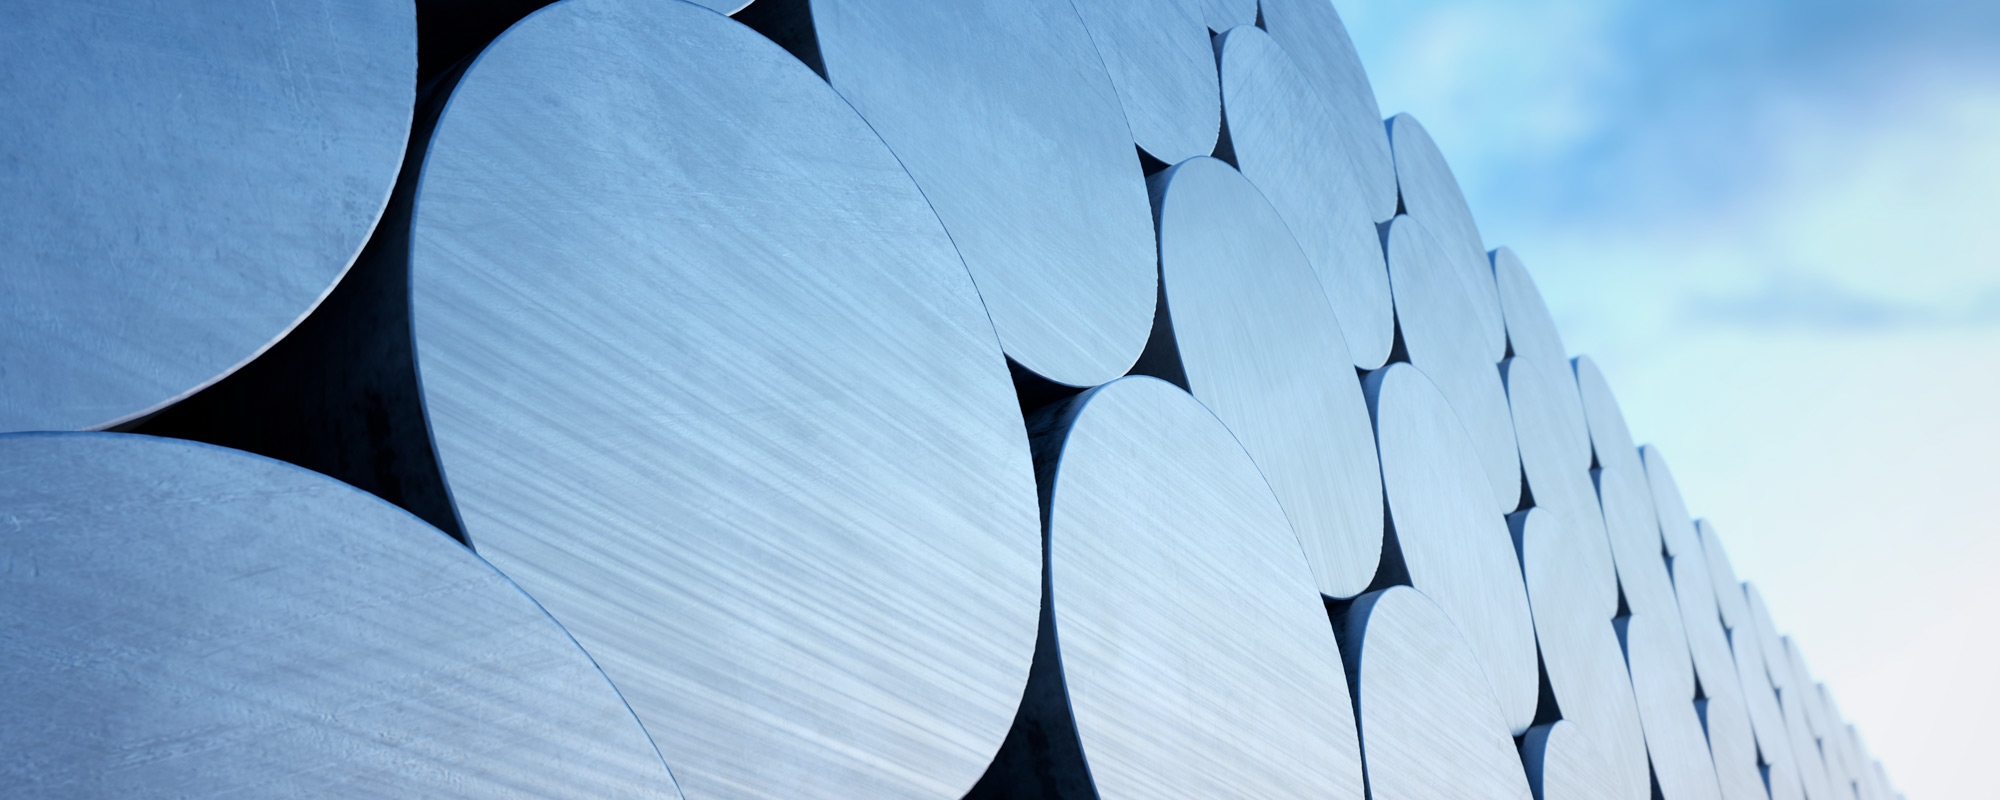 Carbon Steel - Delivered Nationwide by West Yorkshire Steel